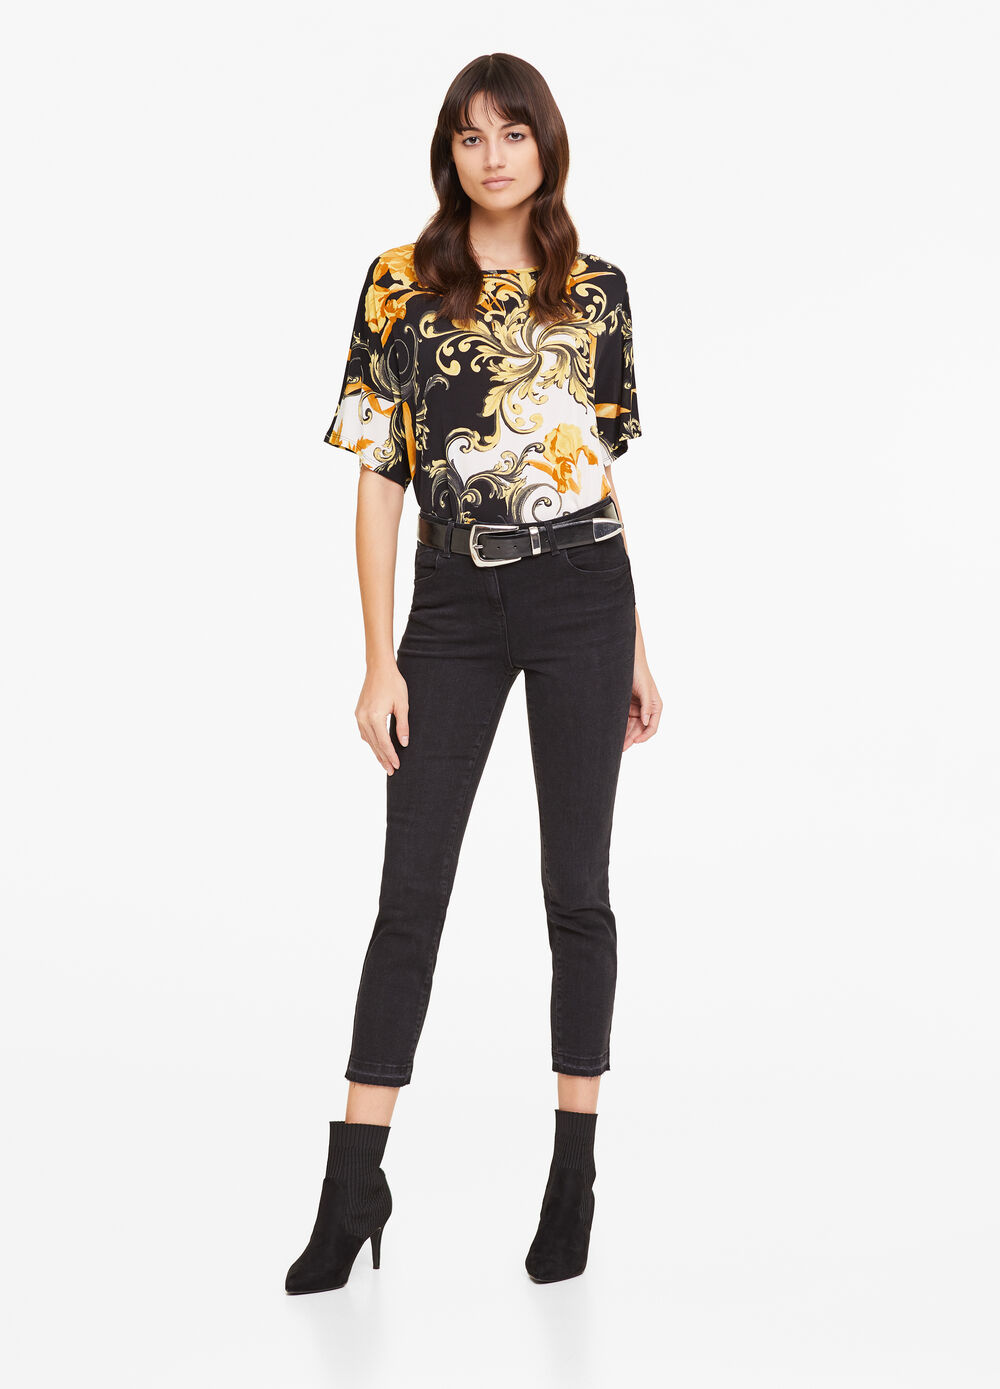 Arabesque floral stretch T-shirt